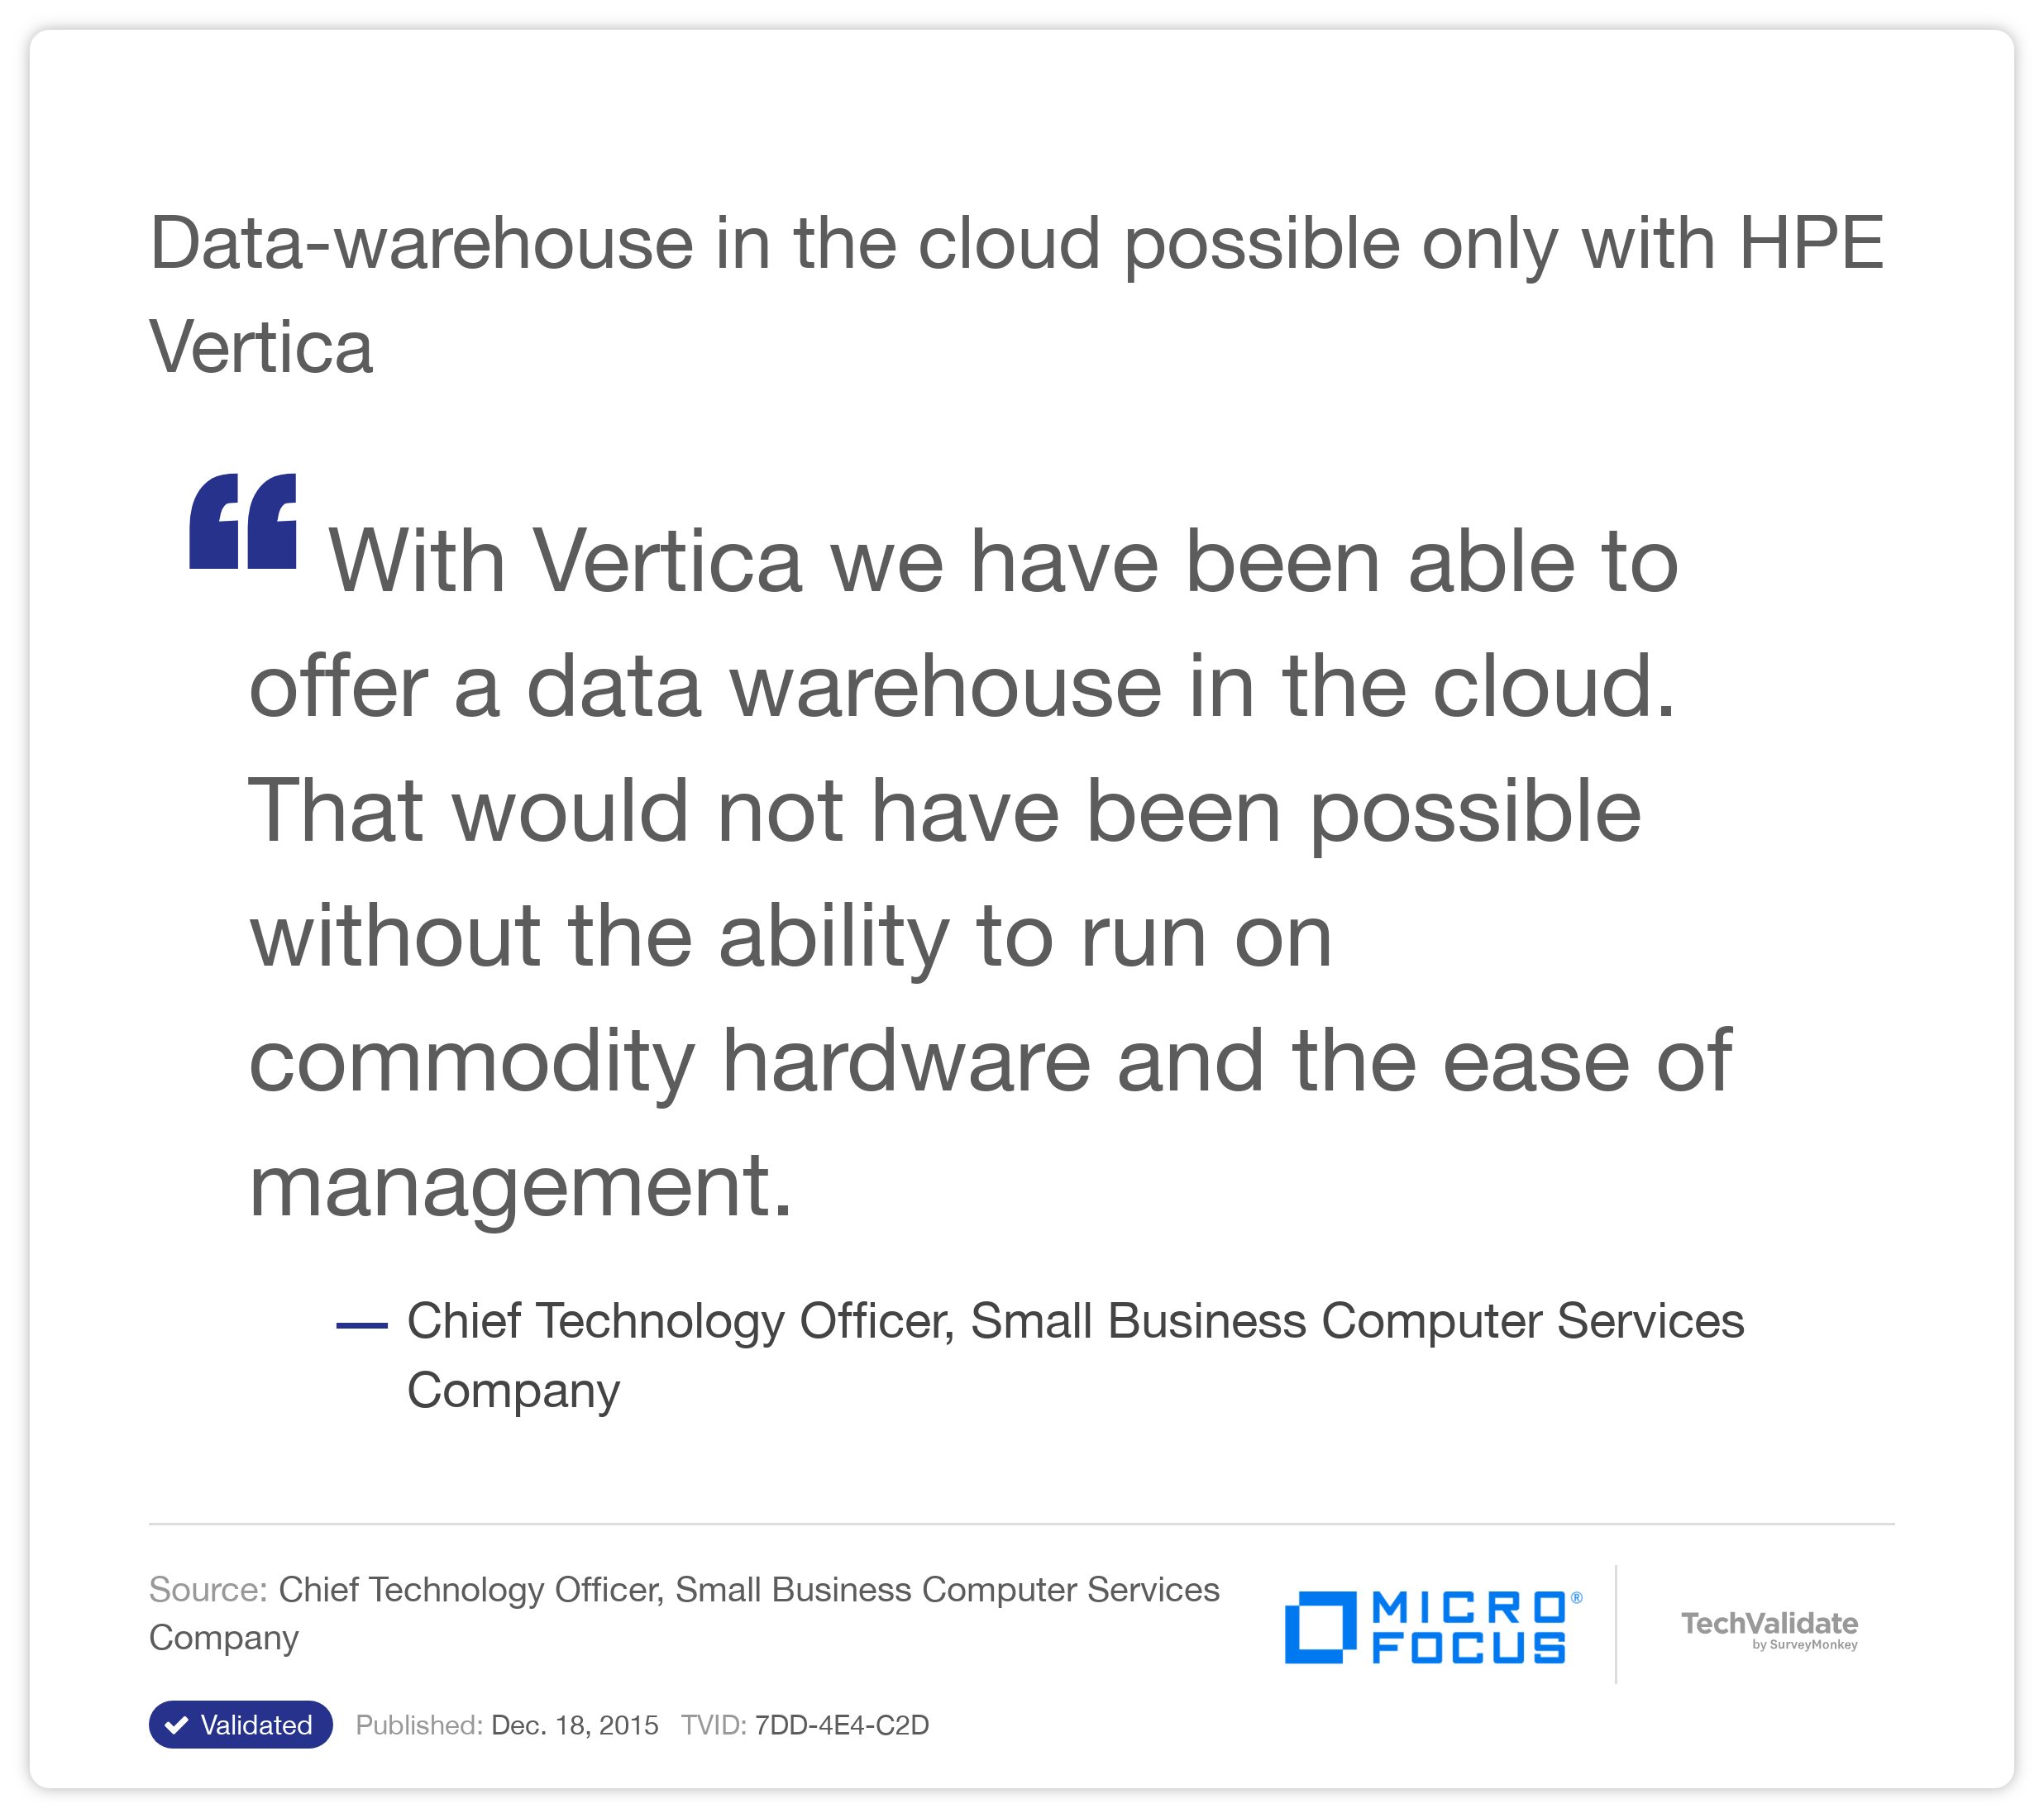 Data-warehouse in the cloud possible only with HP Vertica